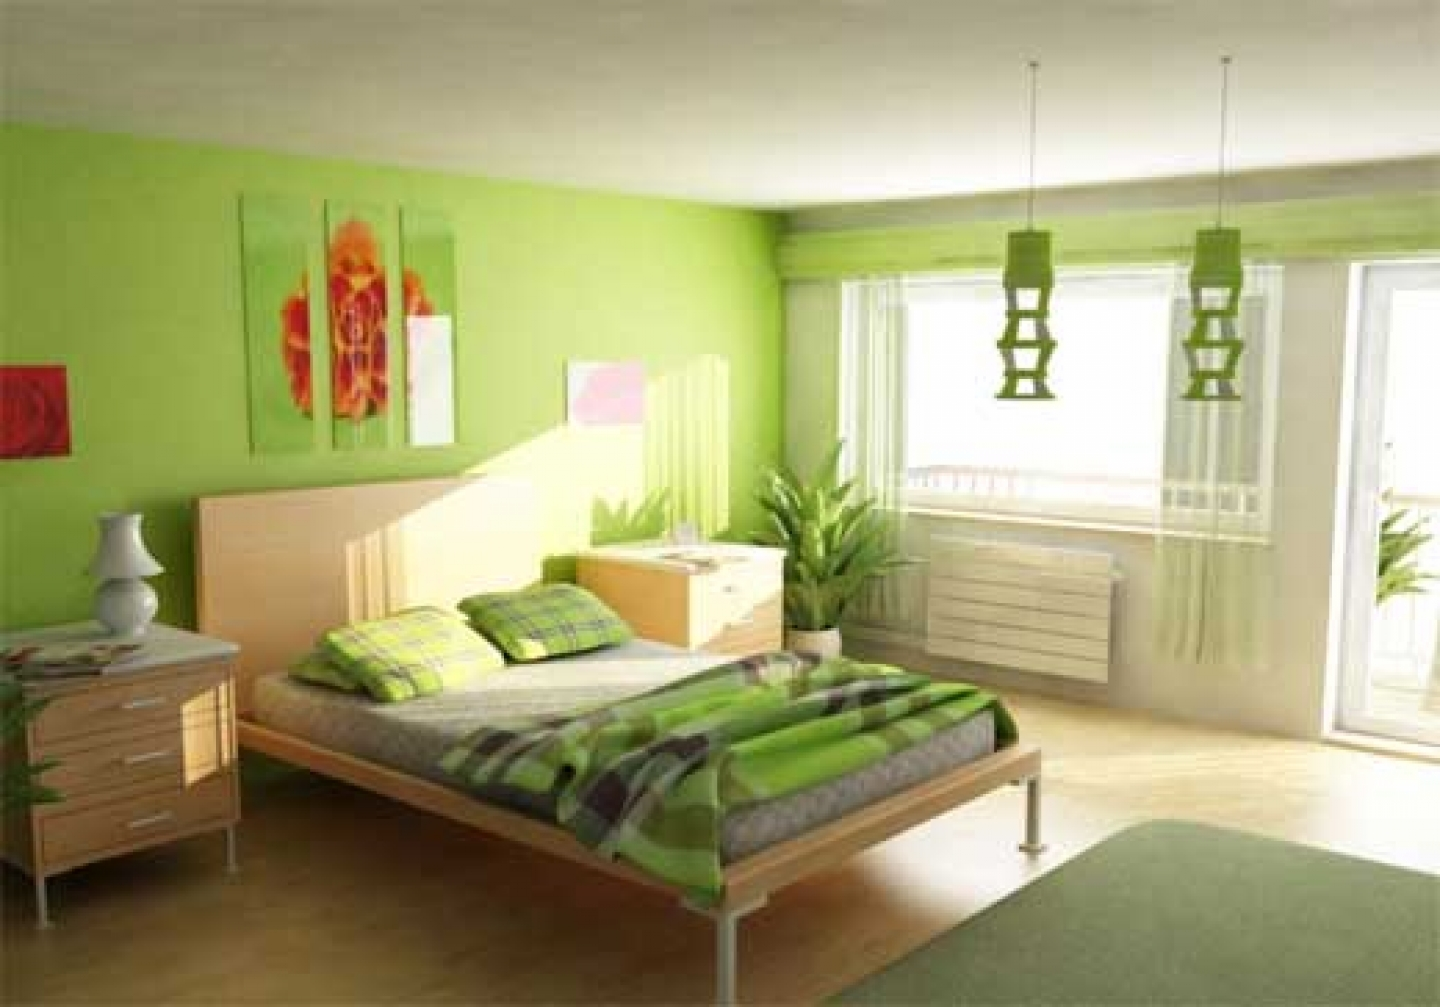 paint color ideas for bedrooms photo - 2